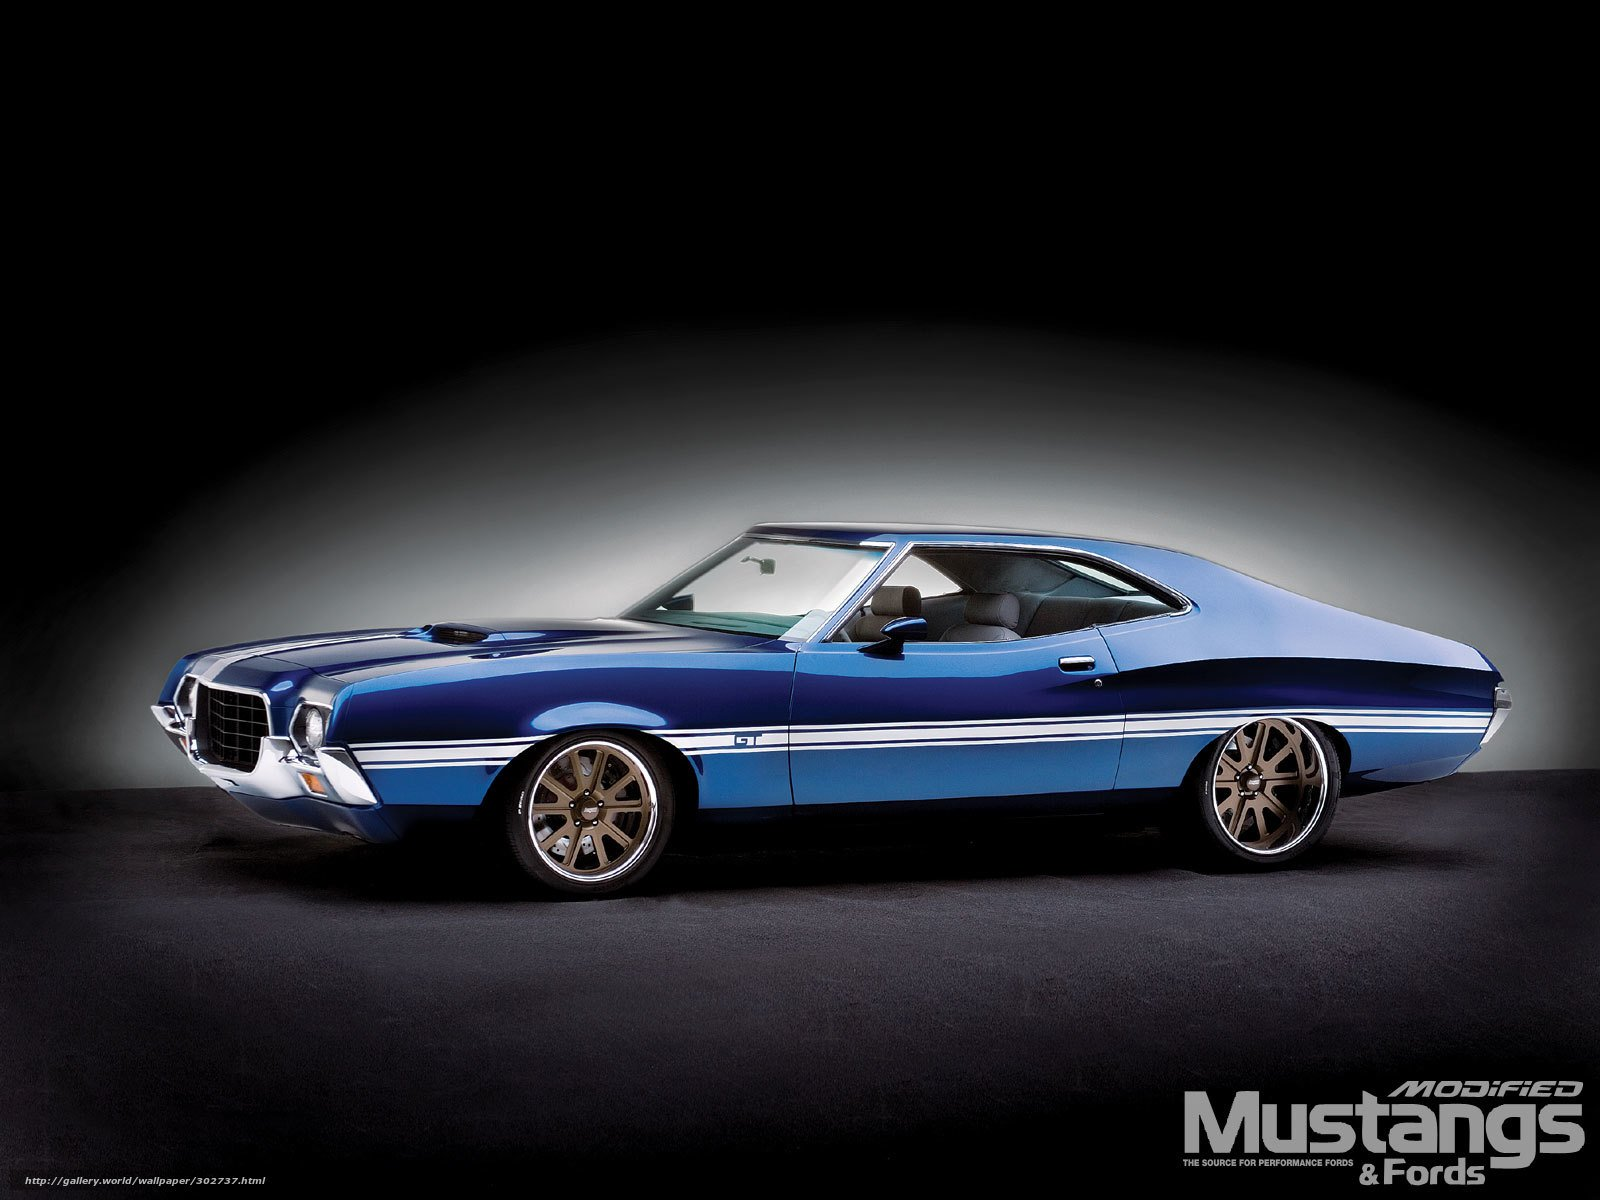 Download wallpaper Car machine muscle car Tuning desktop 1600x1200